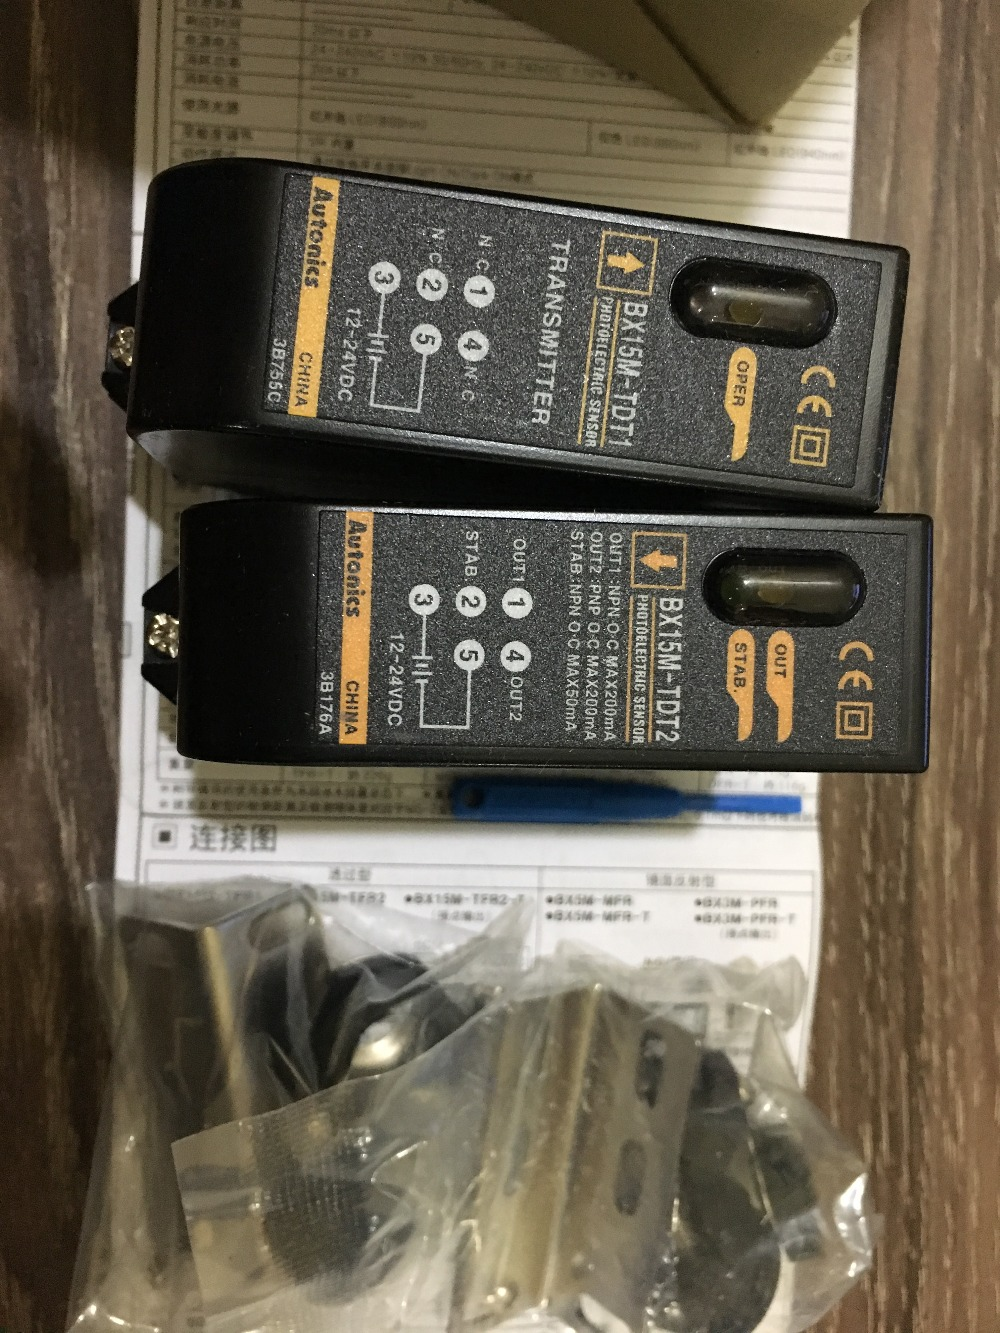 где купить new original BX15M-TDT Autonics photoelectric sensors дешево